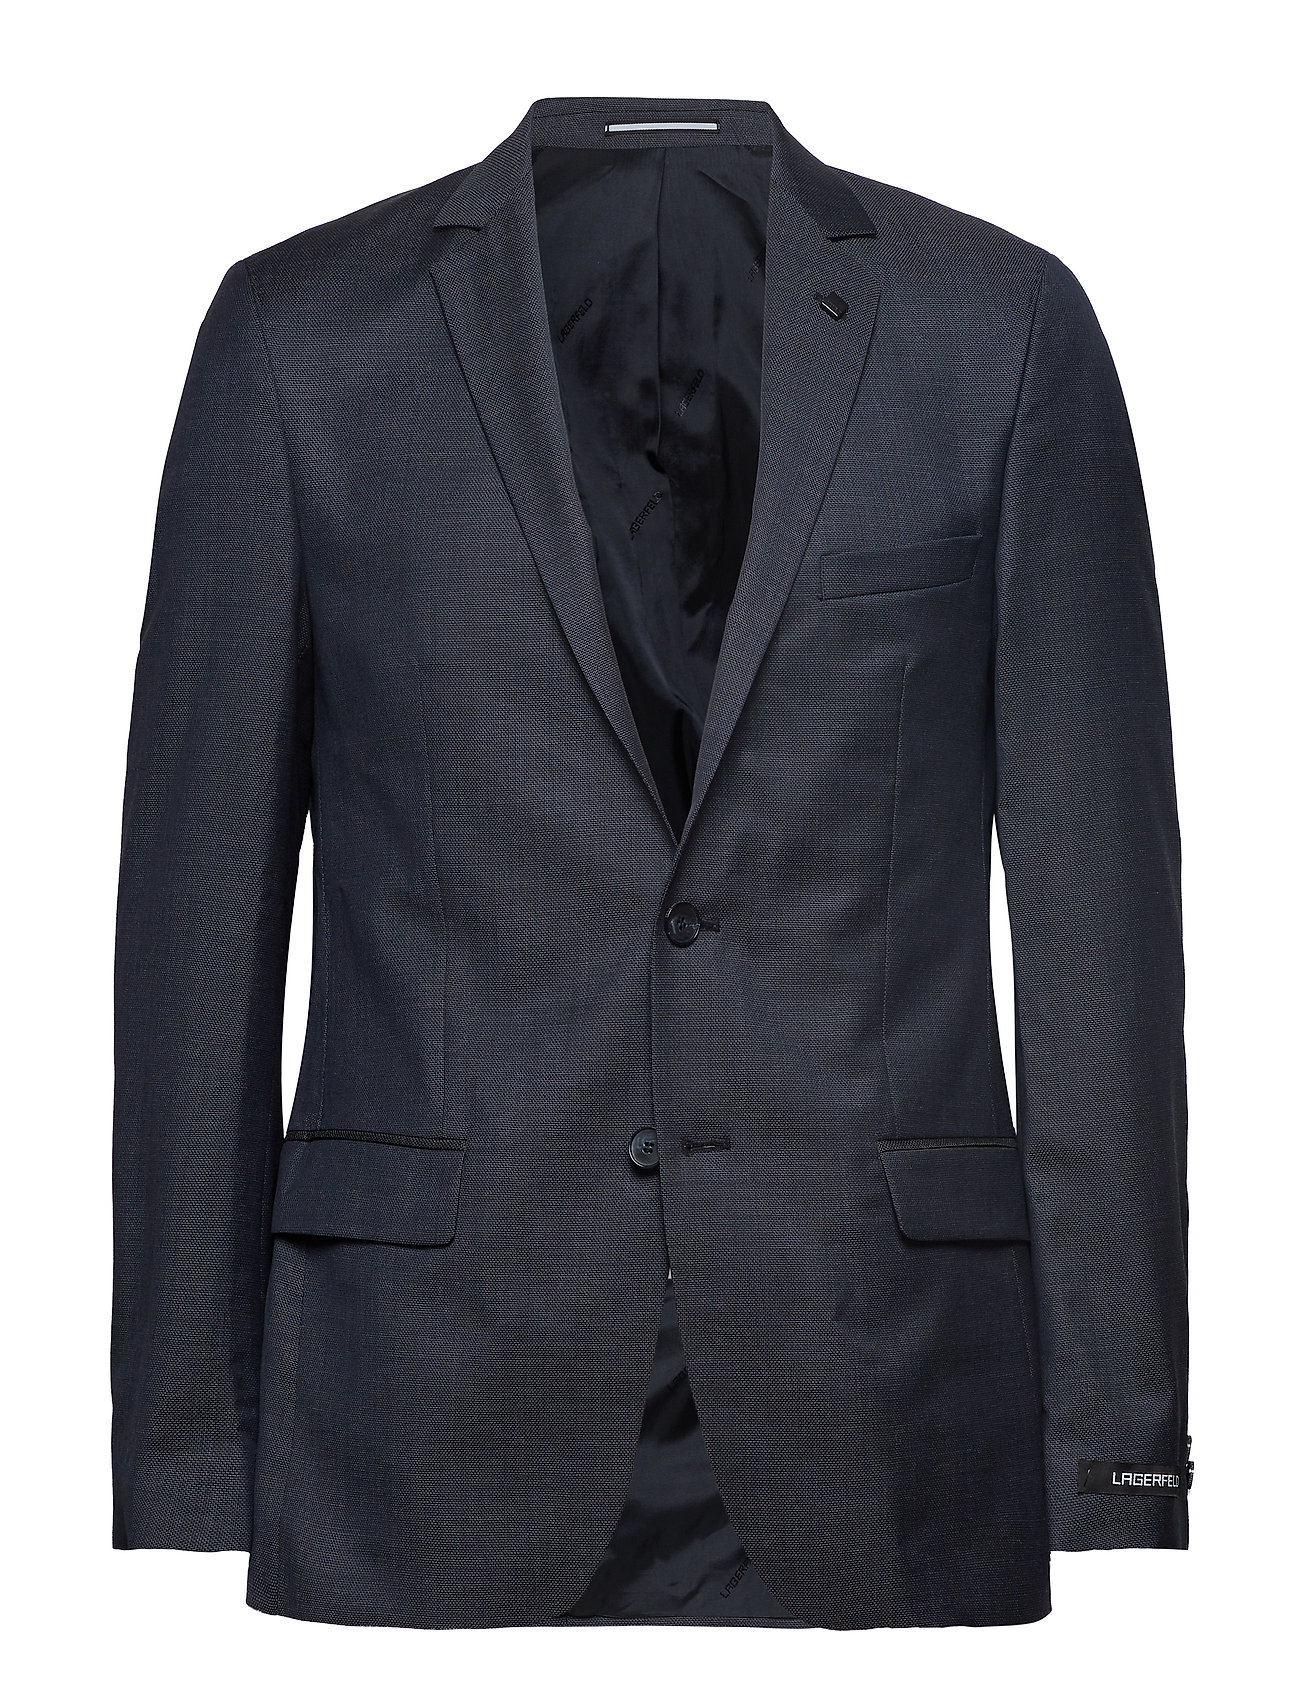 Lagerfeld JACKET CLEVER - 690-NAVY